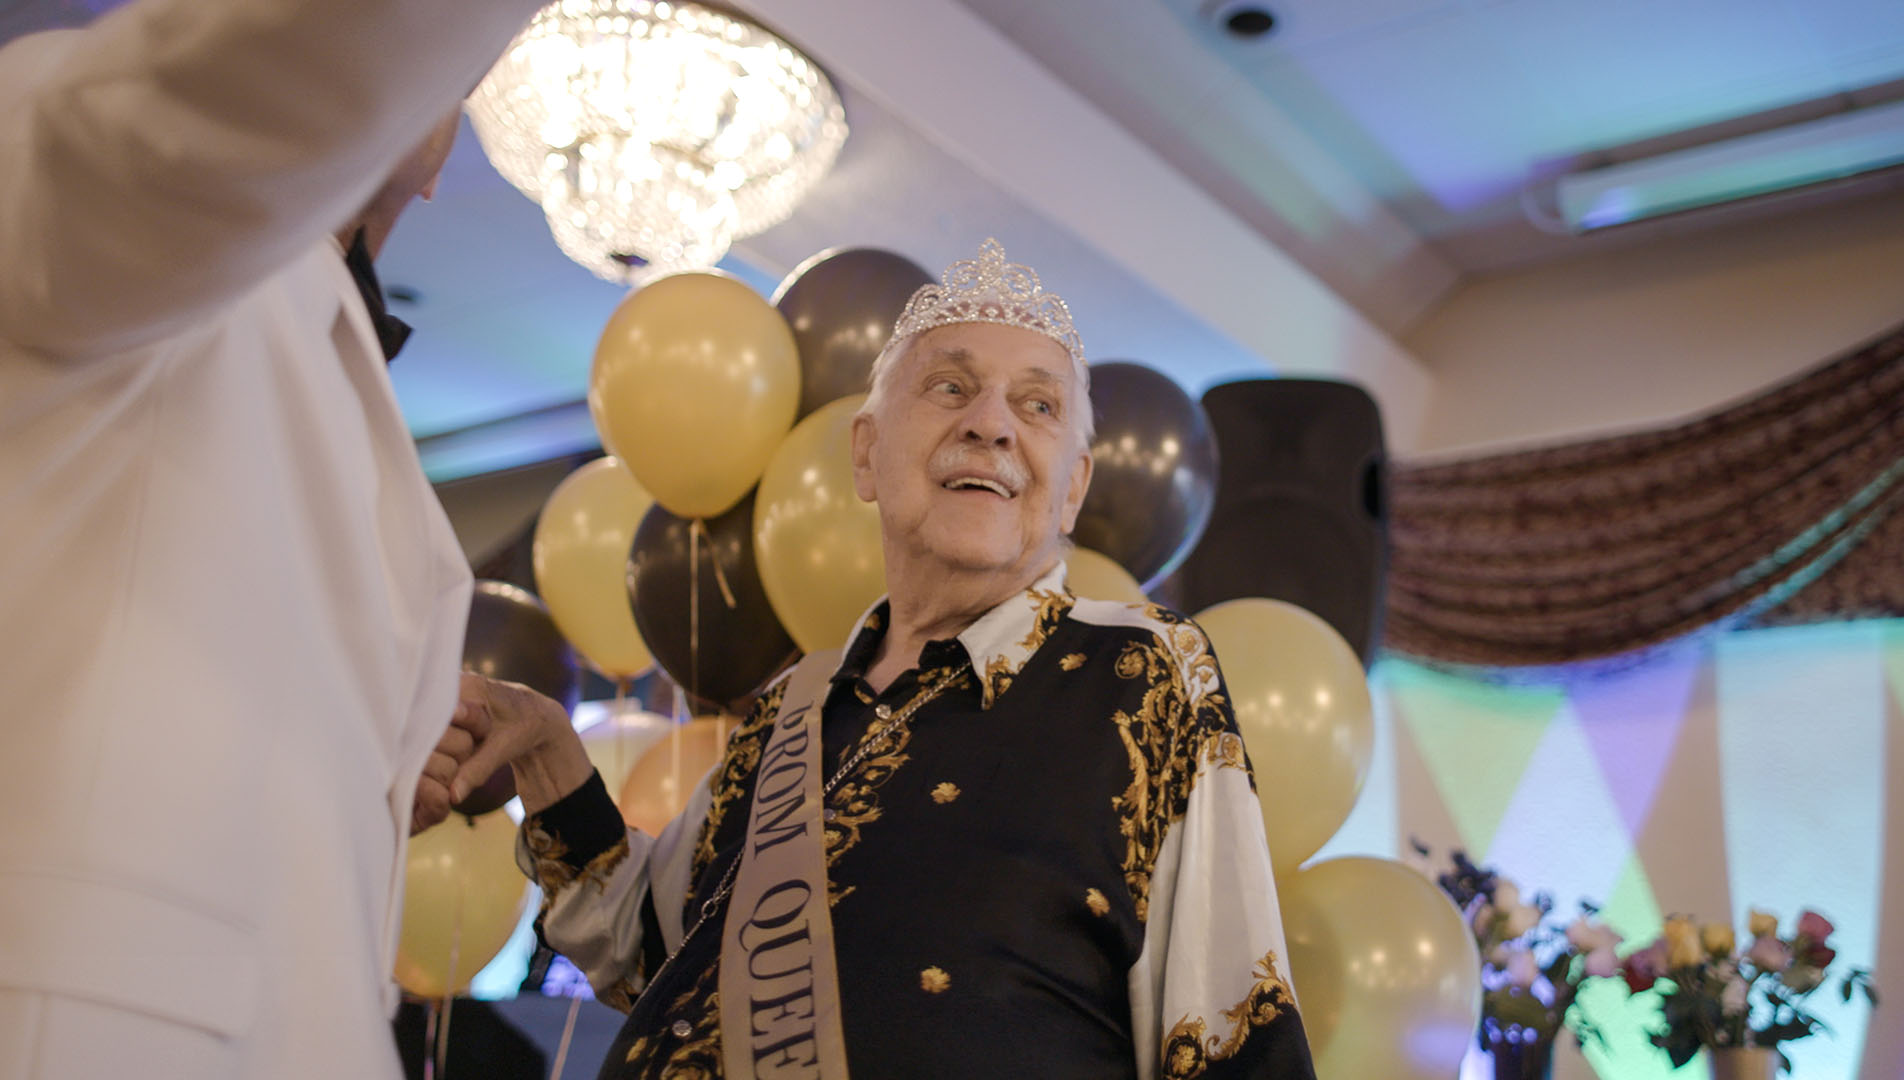 """An elderly gentleman celebrates """"prom"""" while in an assisted living facility, wearing sash and crown"""